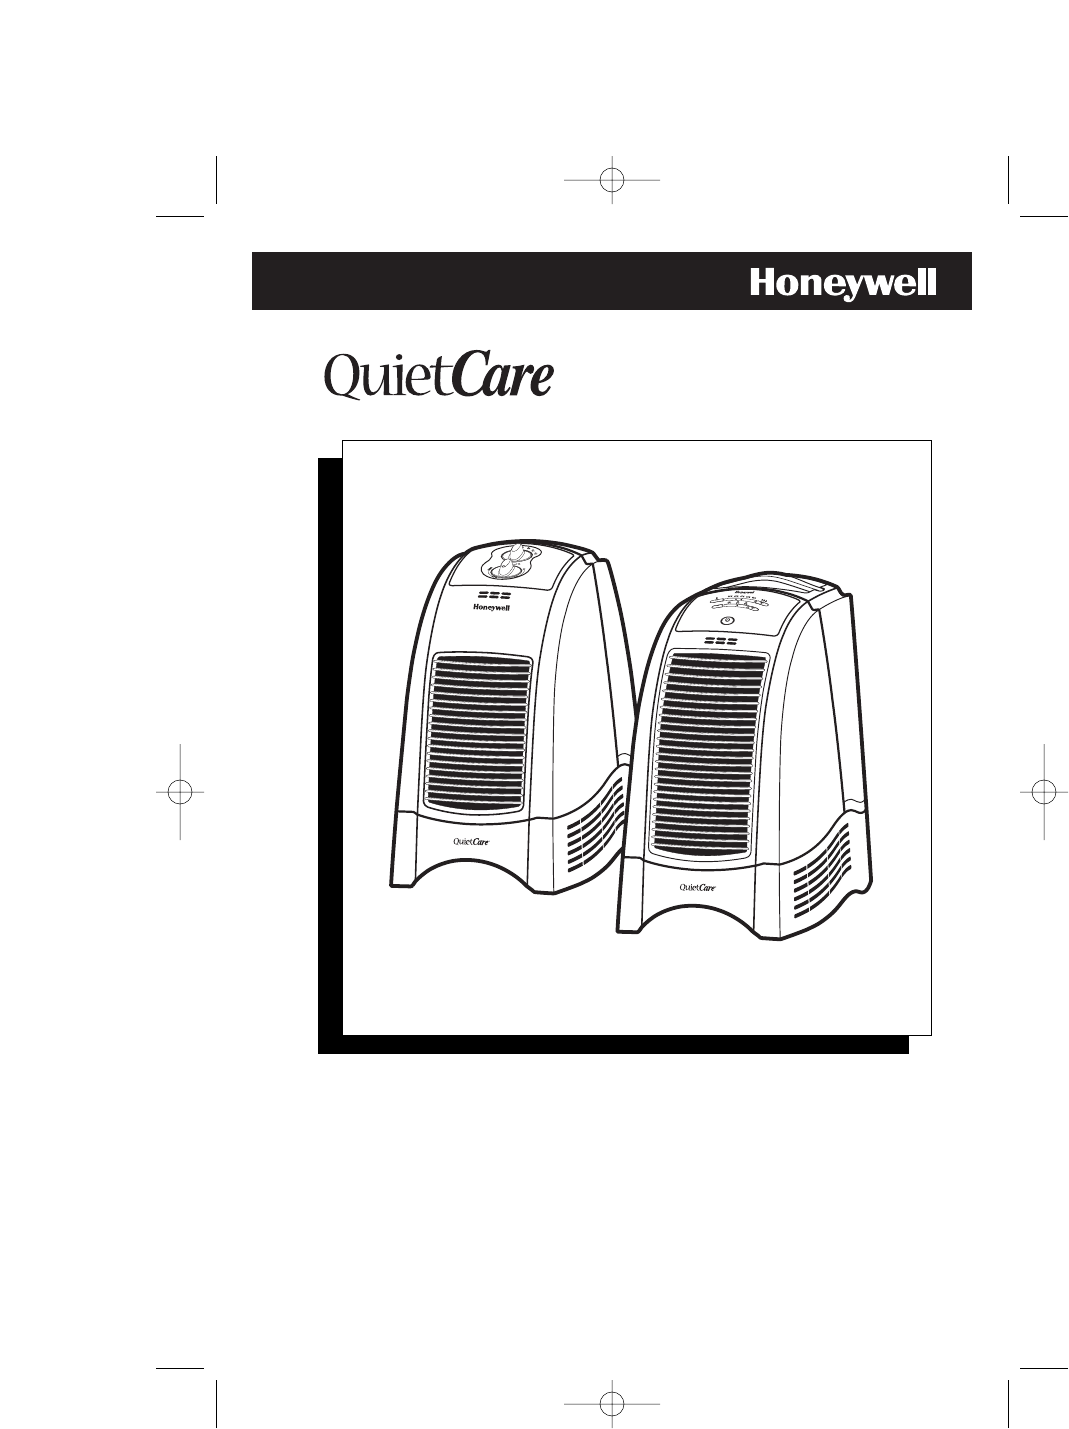 honeywell humidifier hcm 645 user guide. Black Bedroom Furniture Sets. Home Design Ideas